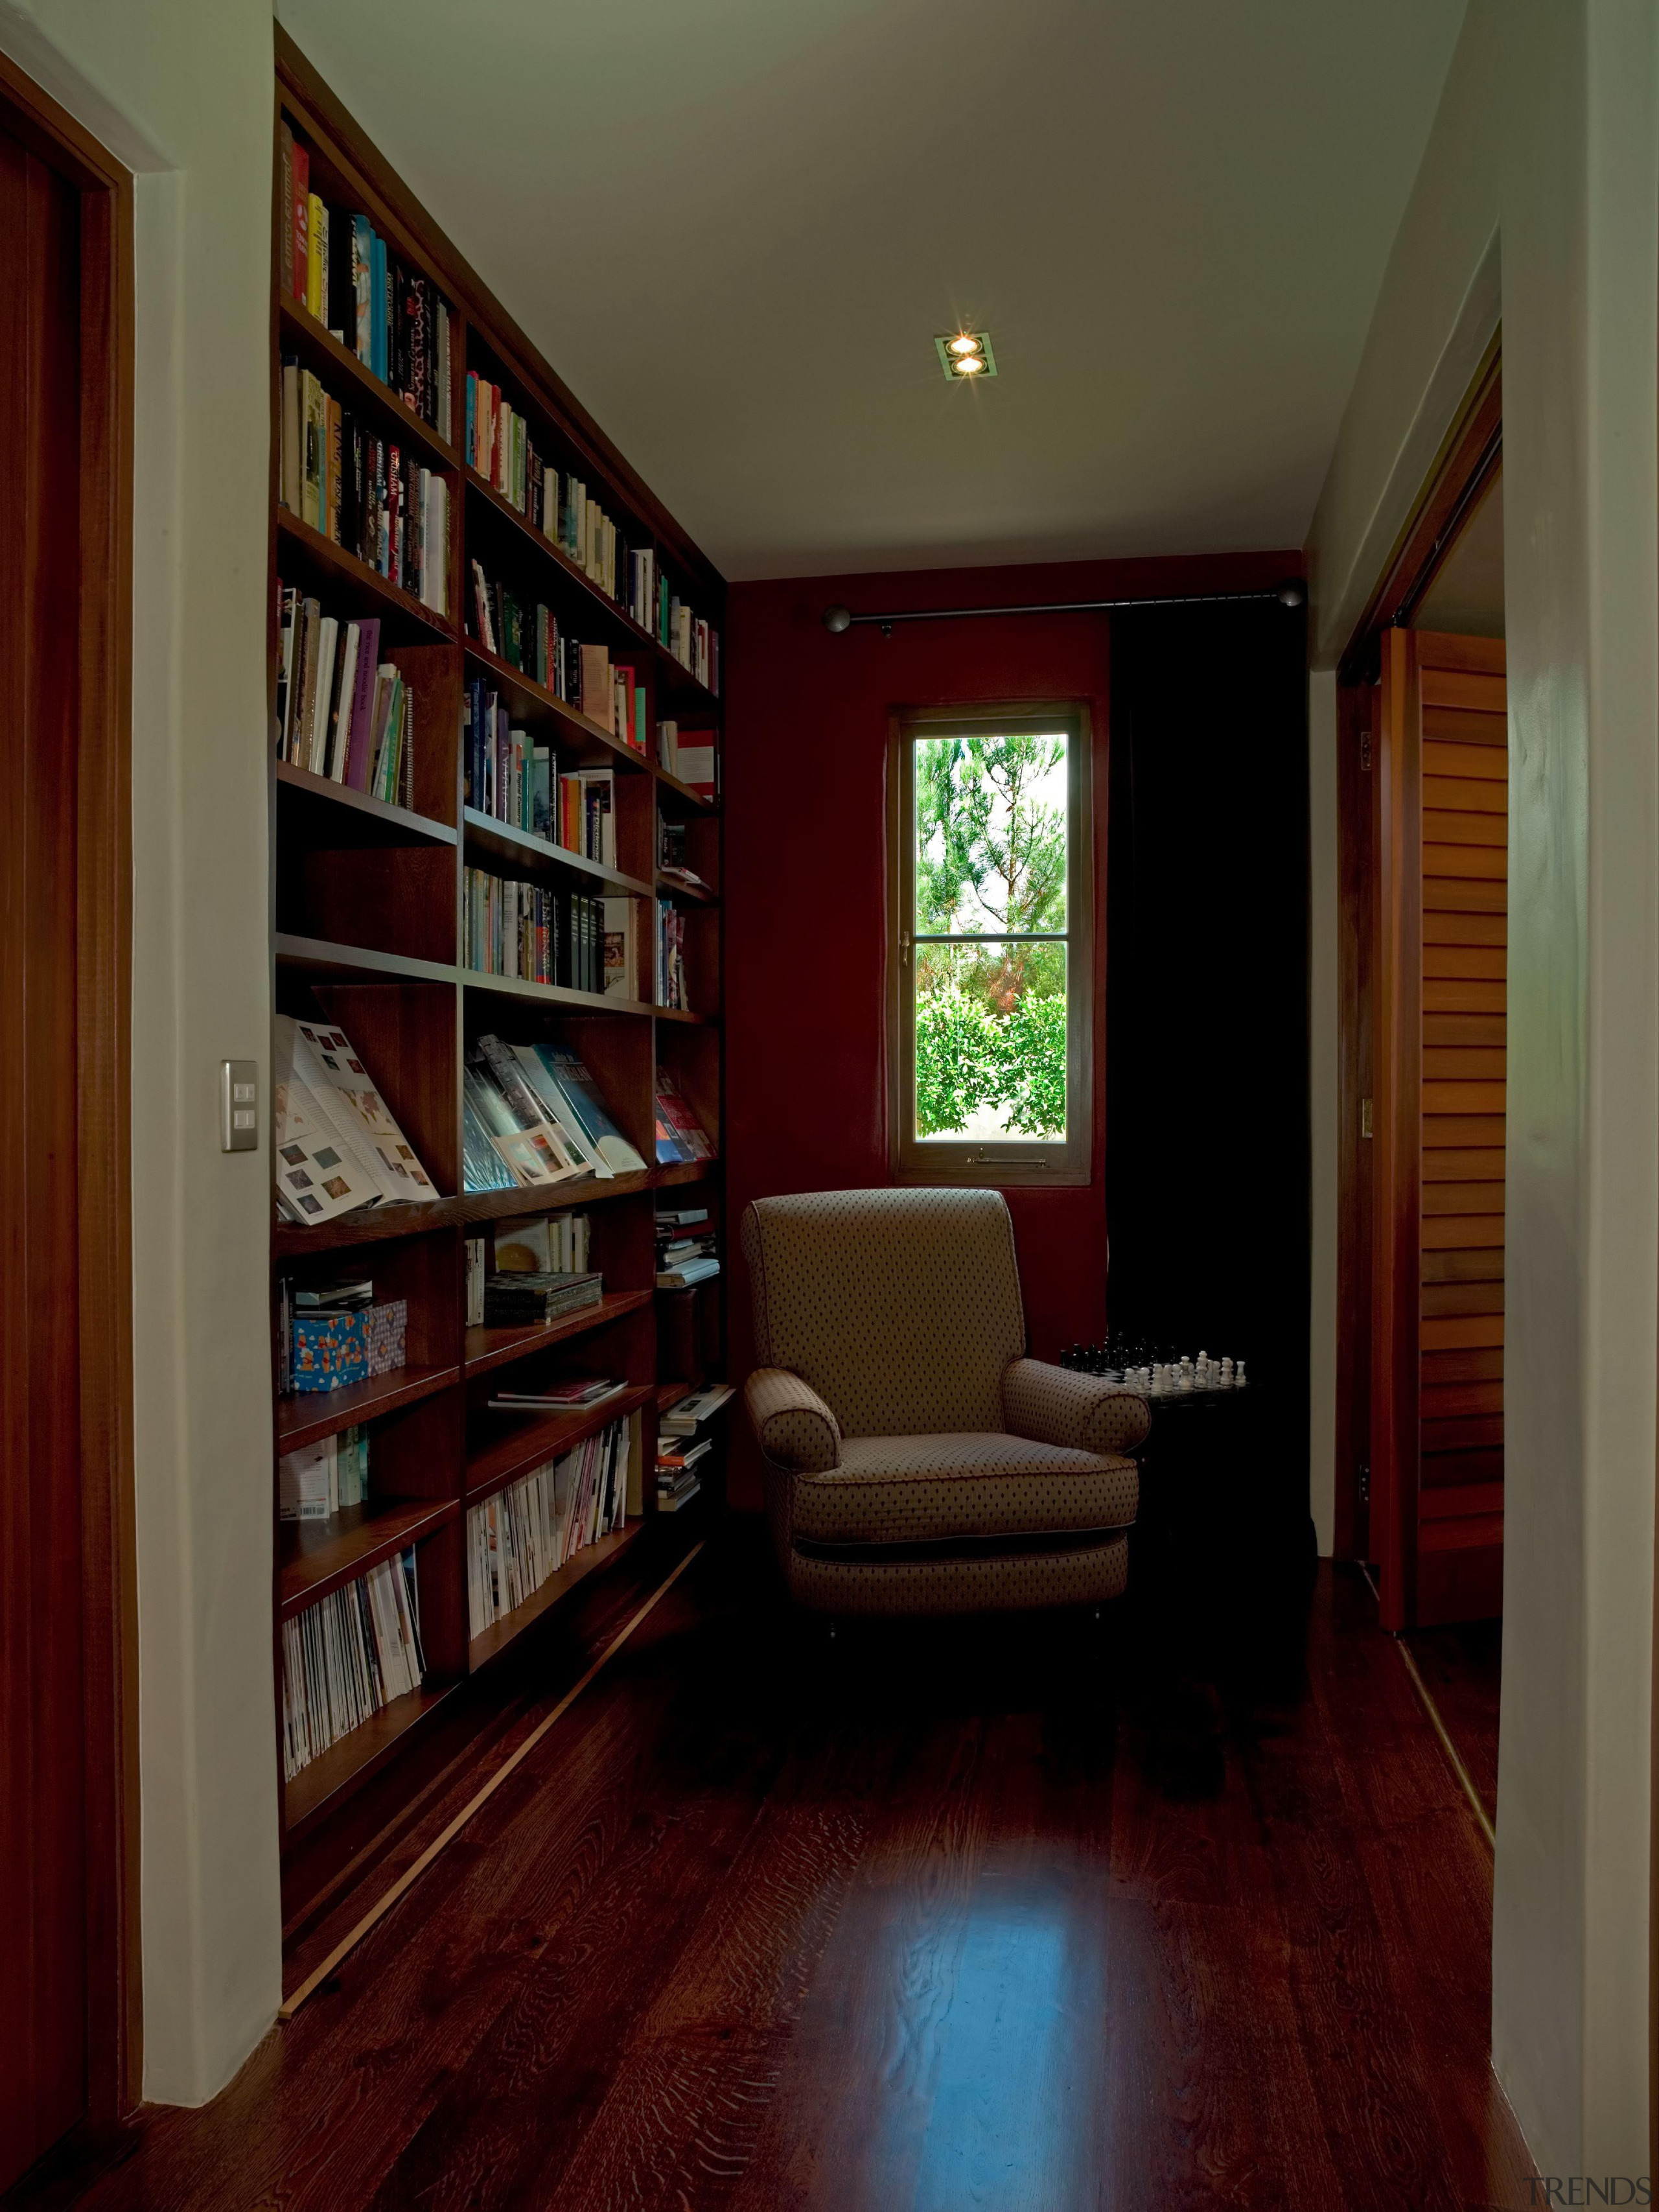 139 onetaunga library - Onetaunga Library - bookcase bookcase, cabinetry, ceiling, floor, flooring, furniture, hardwood, home, interior design, library, living room, real estate, room, shelf, shelving, wall, window, red, brown